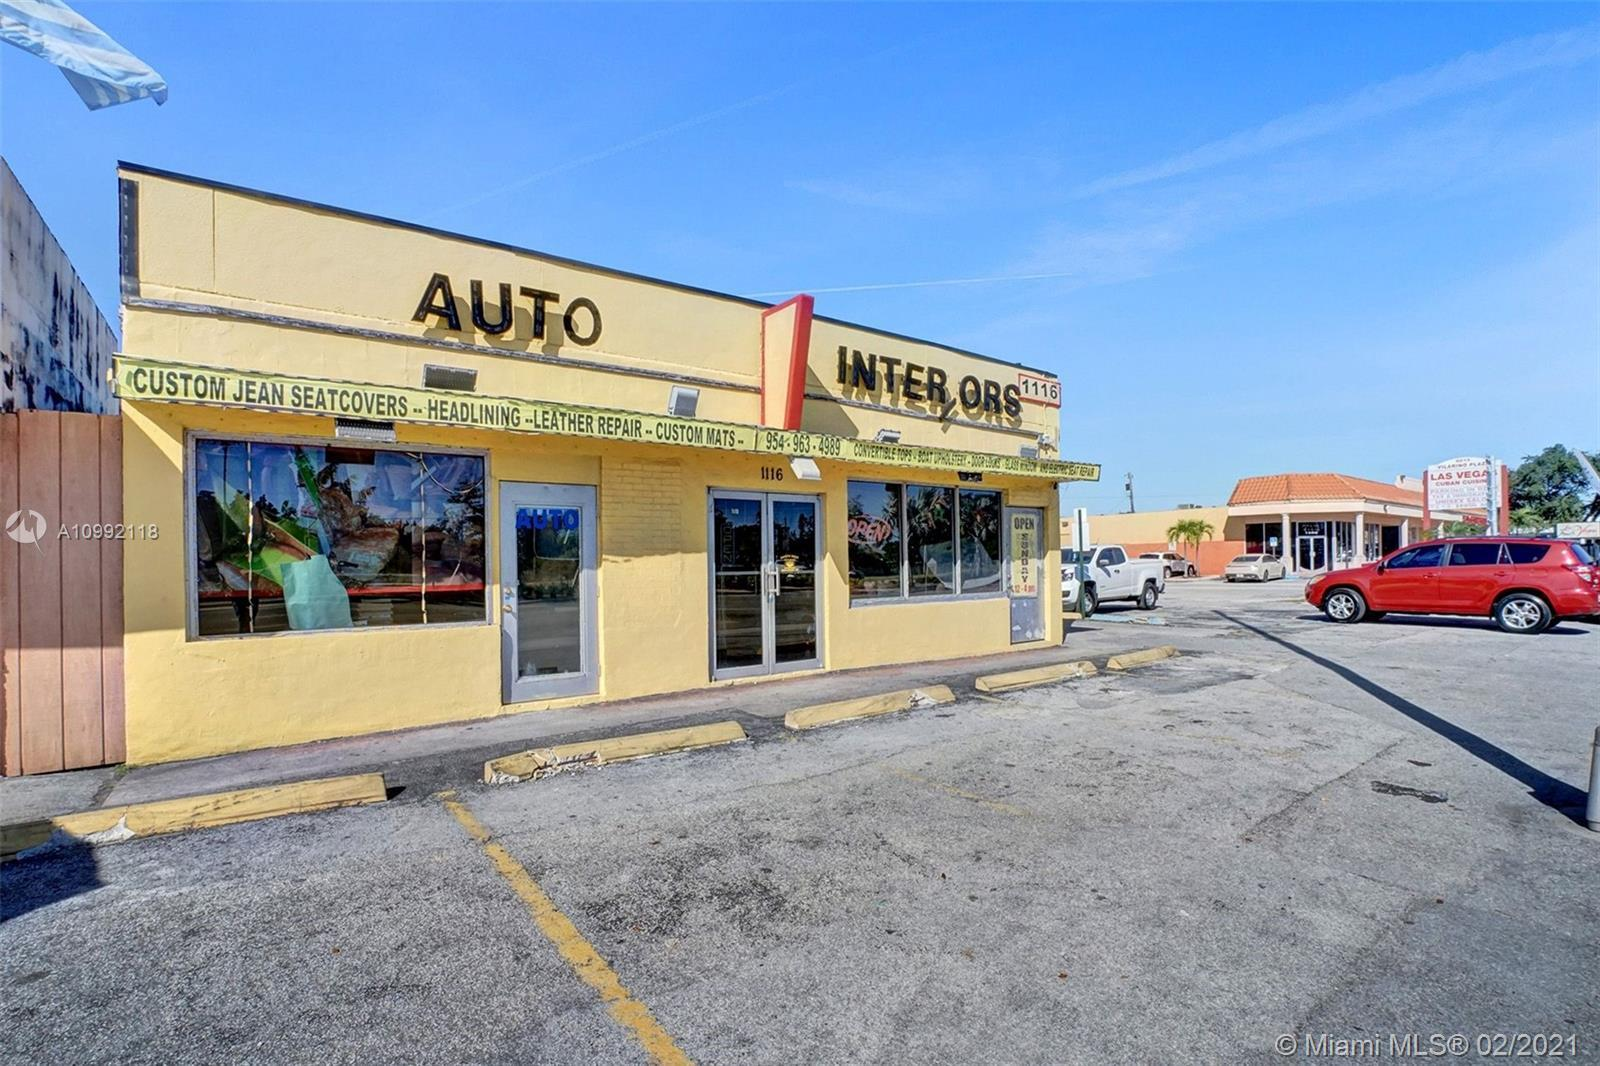 Incredible Development and Business opportunity in the ever-thriving 441 corridor of Hollywood, FL;